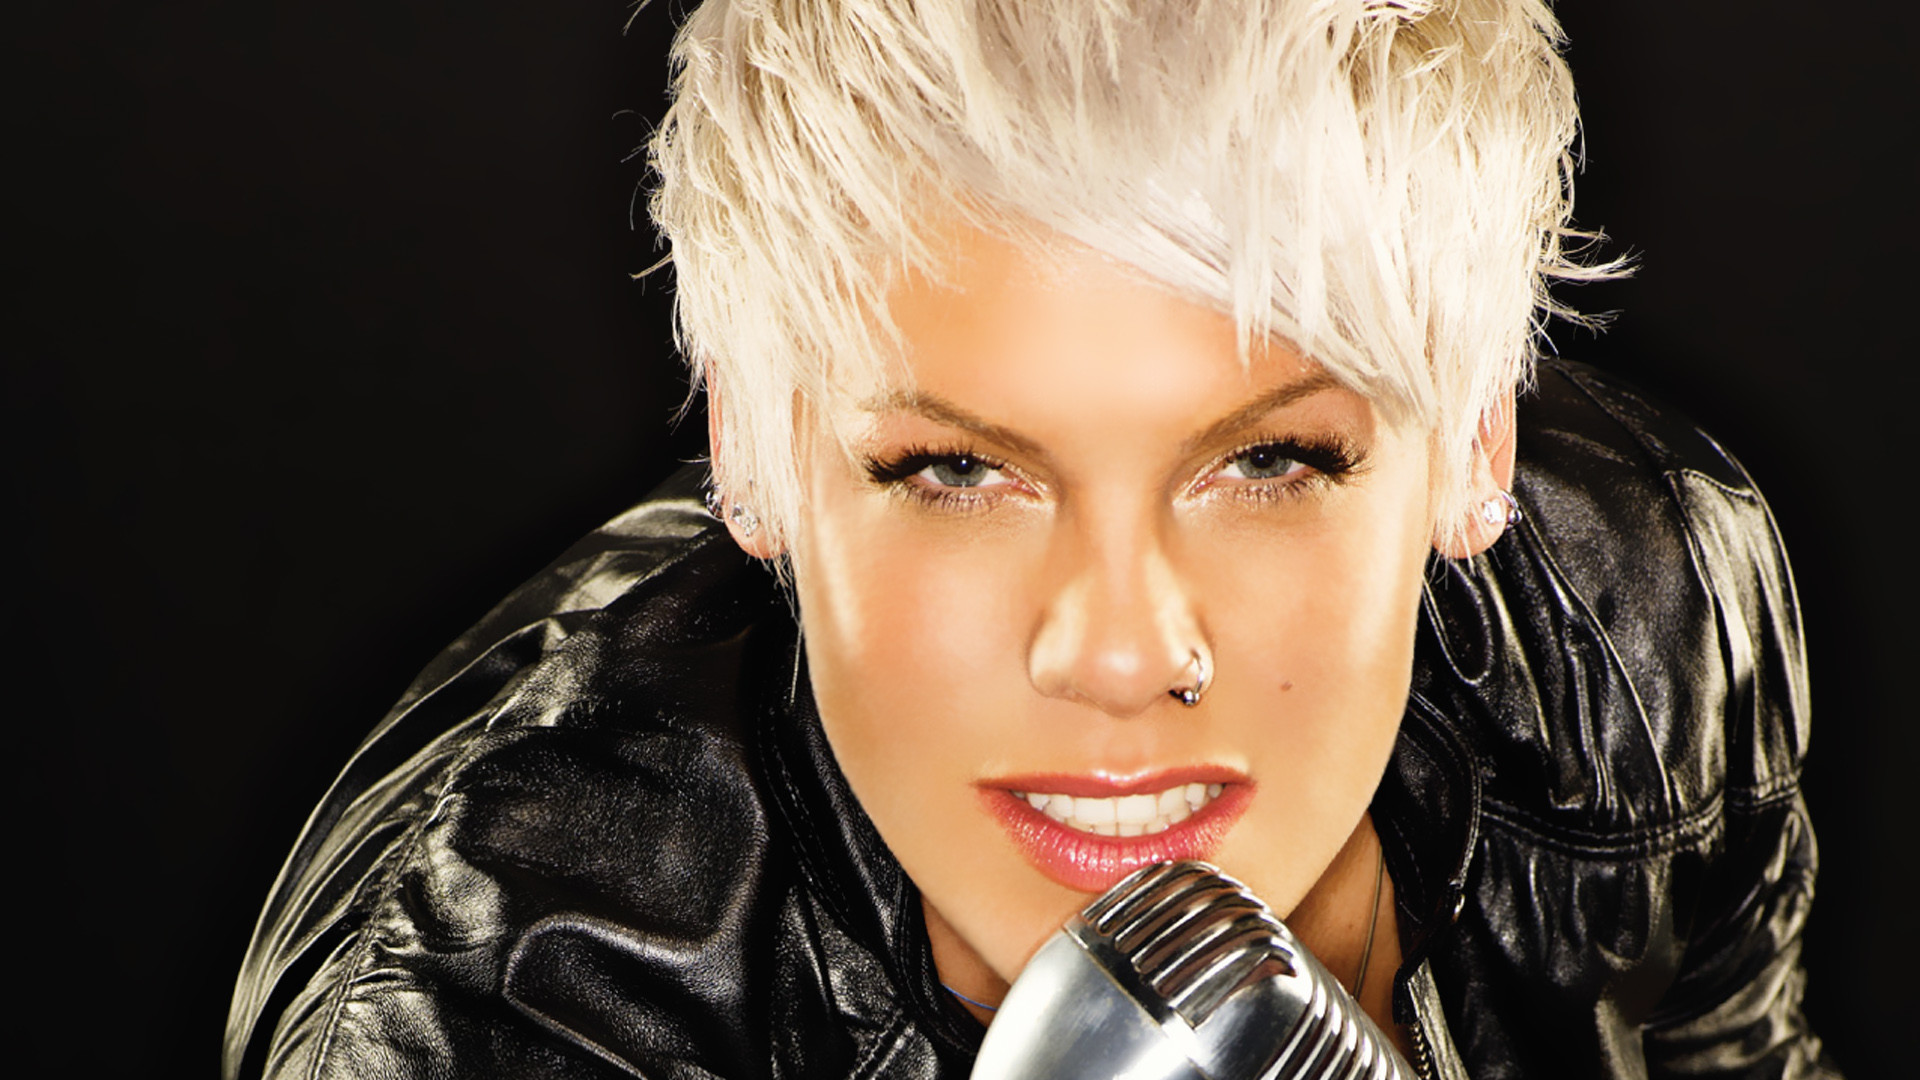 1920x1080 37 best Alecia Beth Moore (P!NK!) images on Pinterest | Beth ...